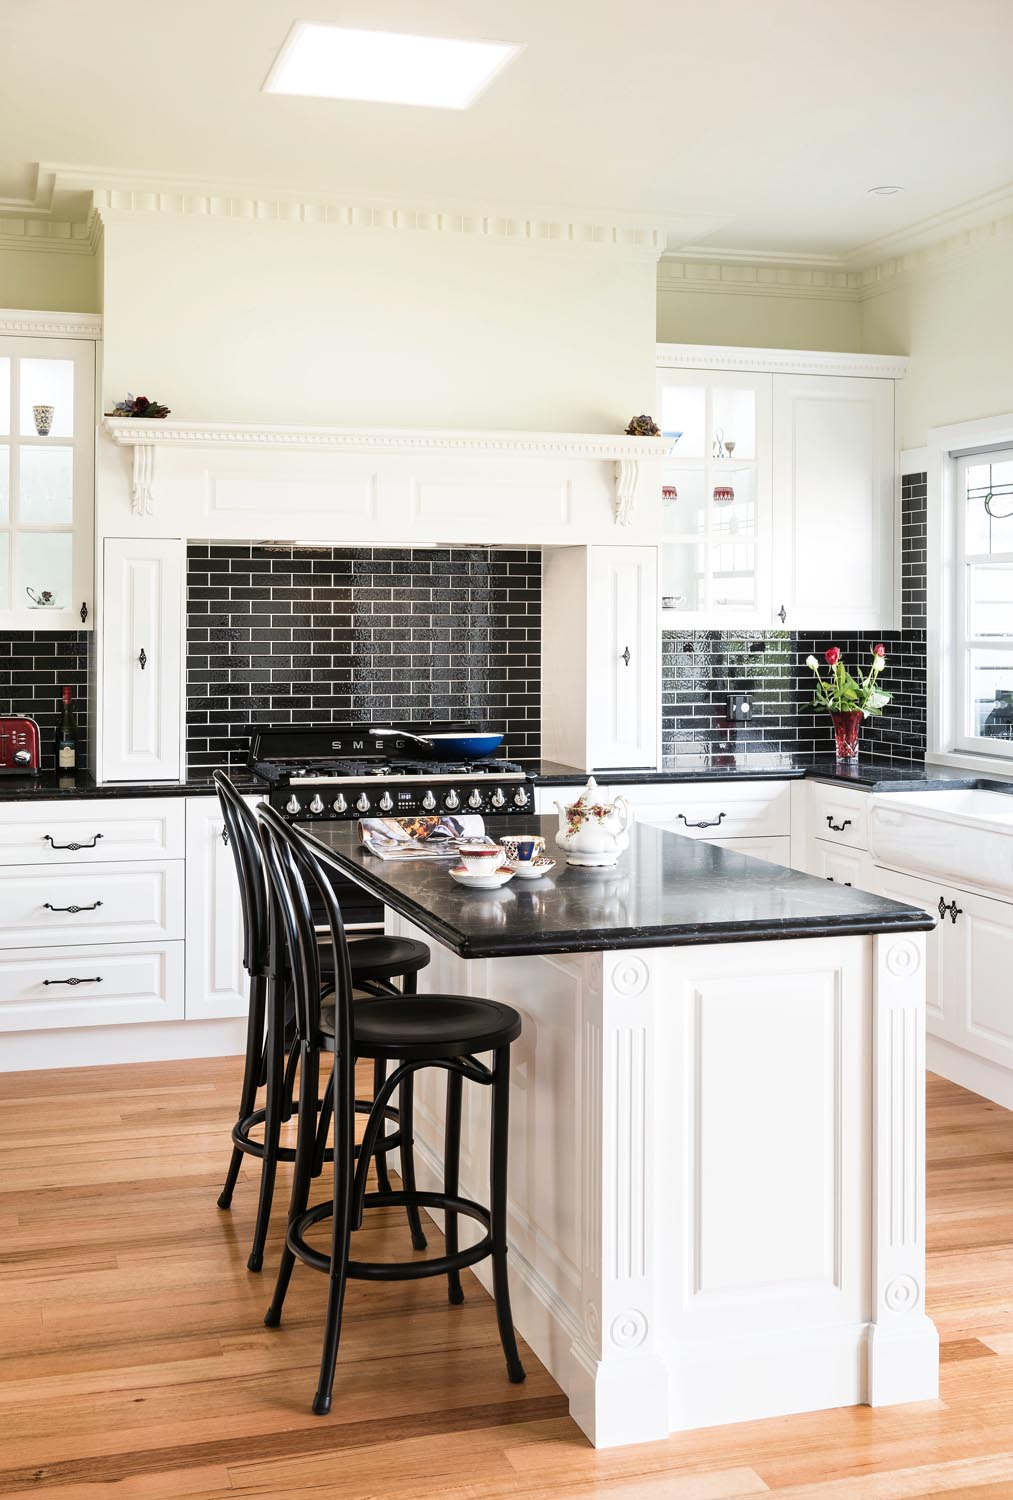 French charm: kitchen design - Completehome